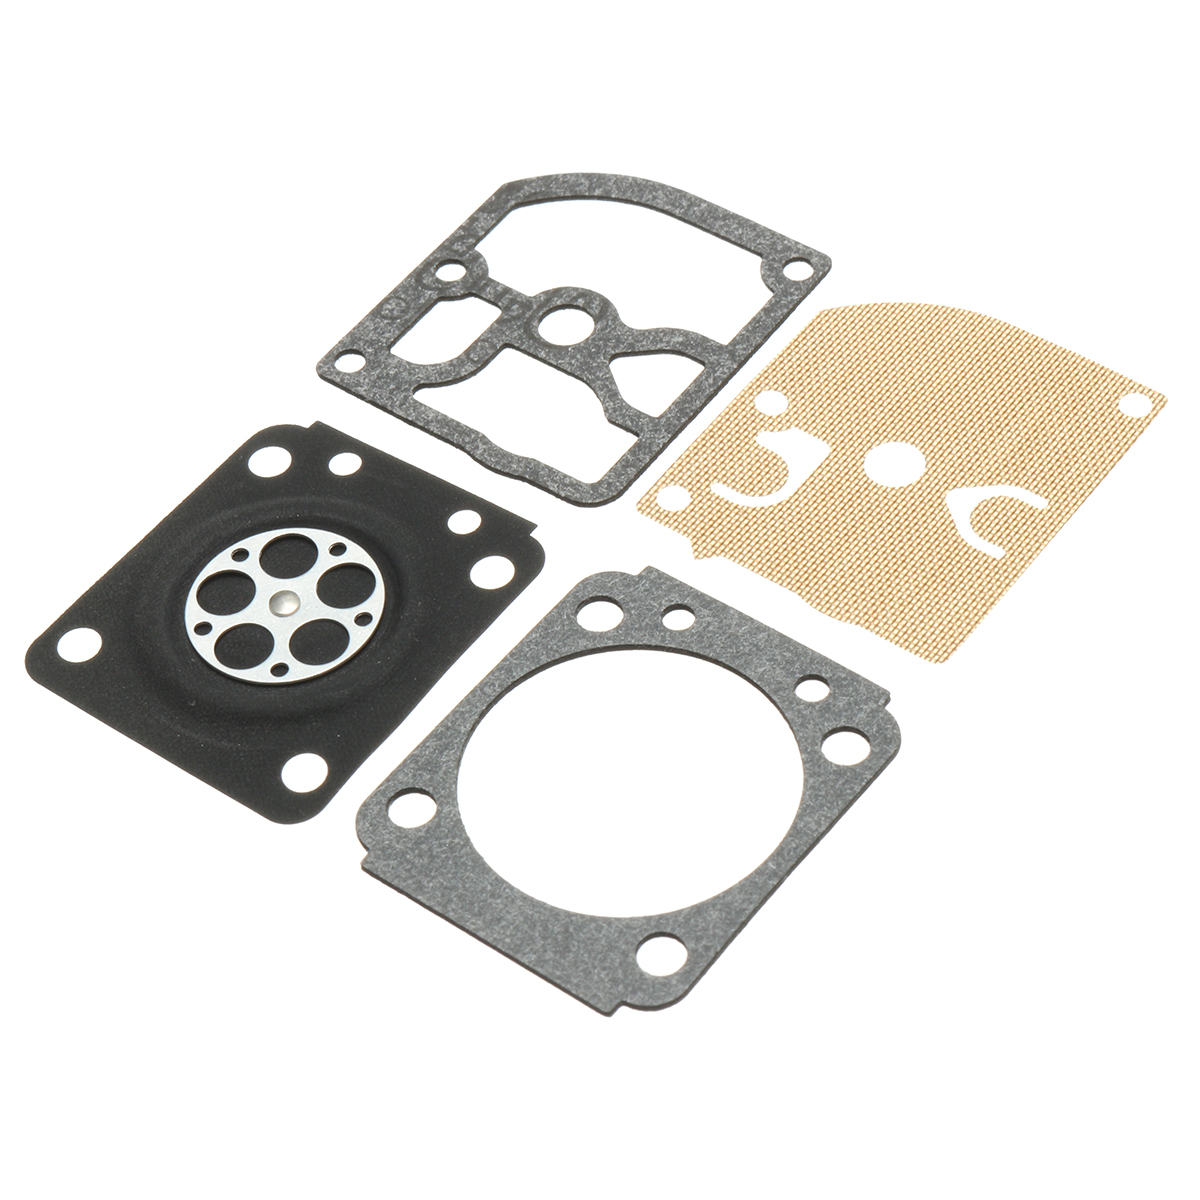 Carburetor Carb Repair Rebuild Kit Gasket For ZAMA RB77 STIHL 018 017 MS180 170